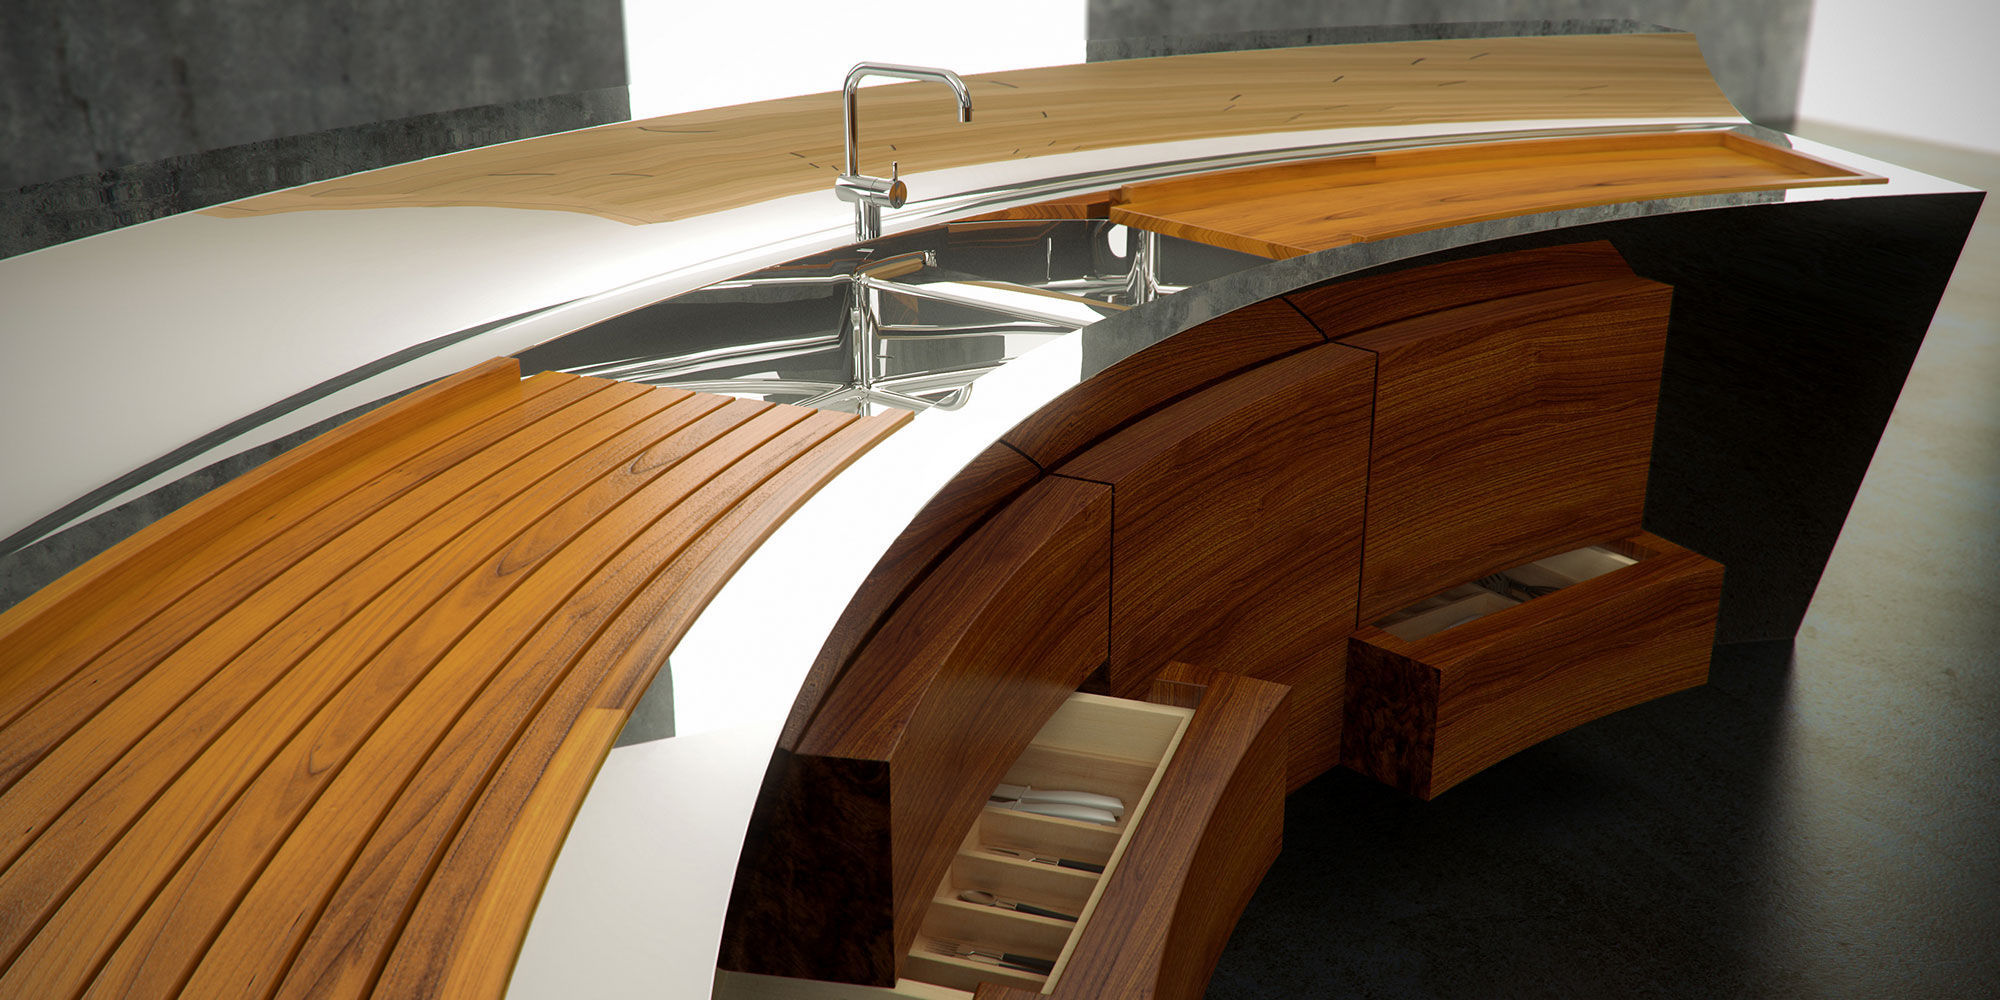 Emejing Cucina In Teak Contemporary - Embercreative.us ...